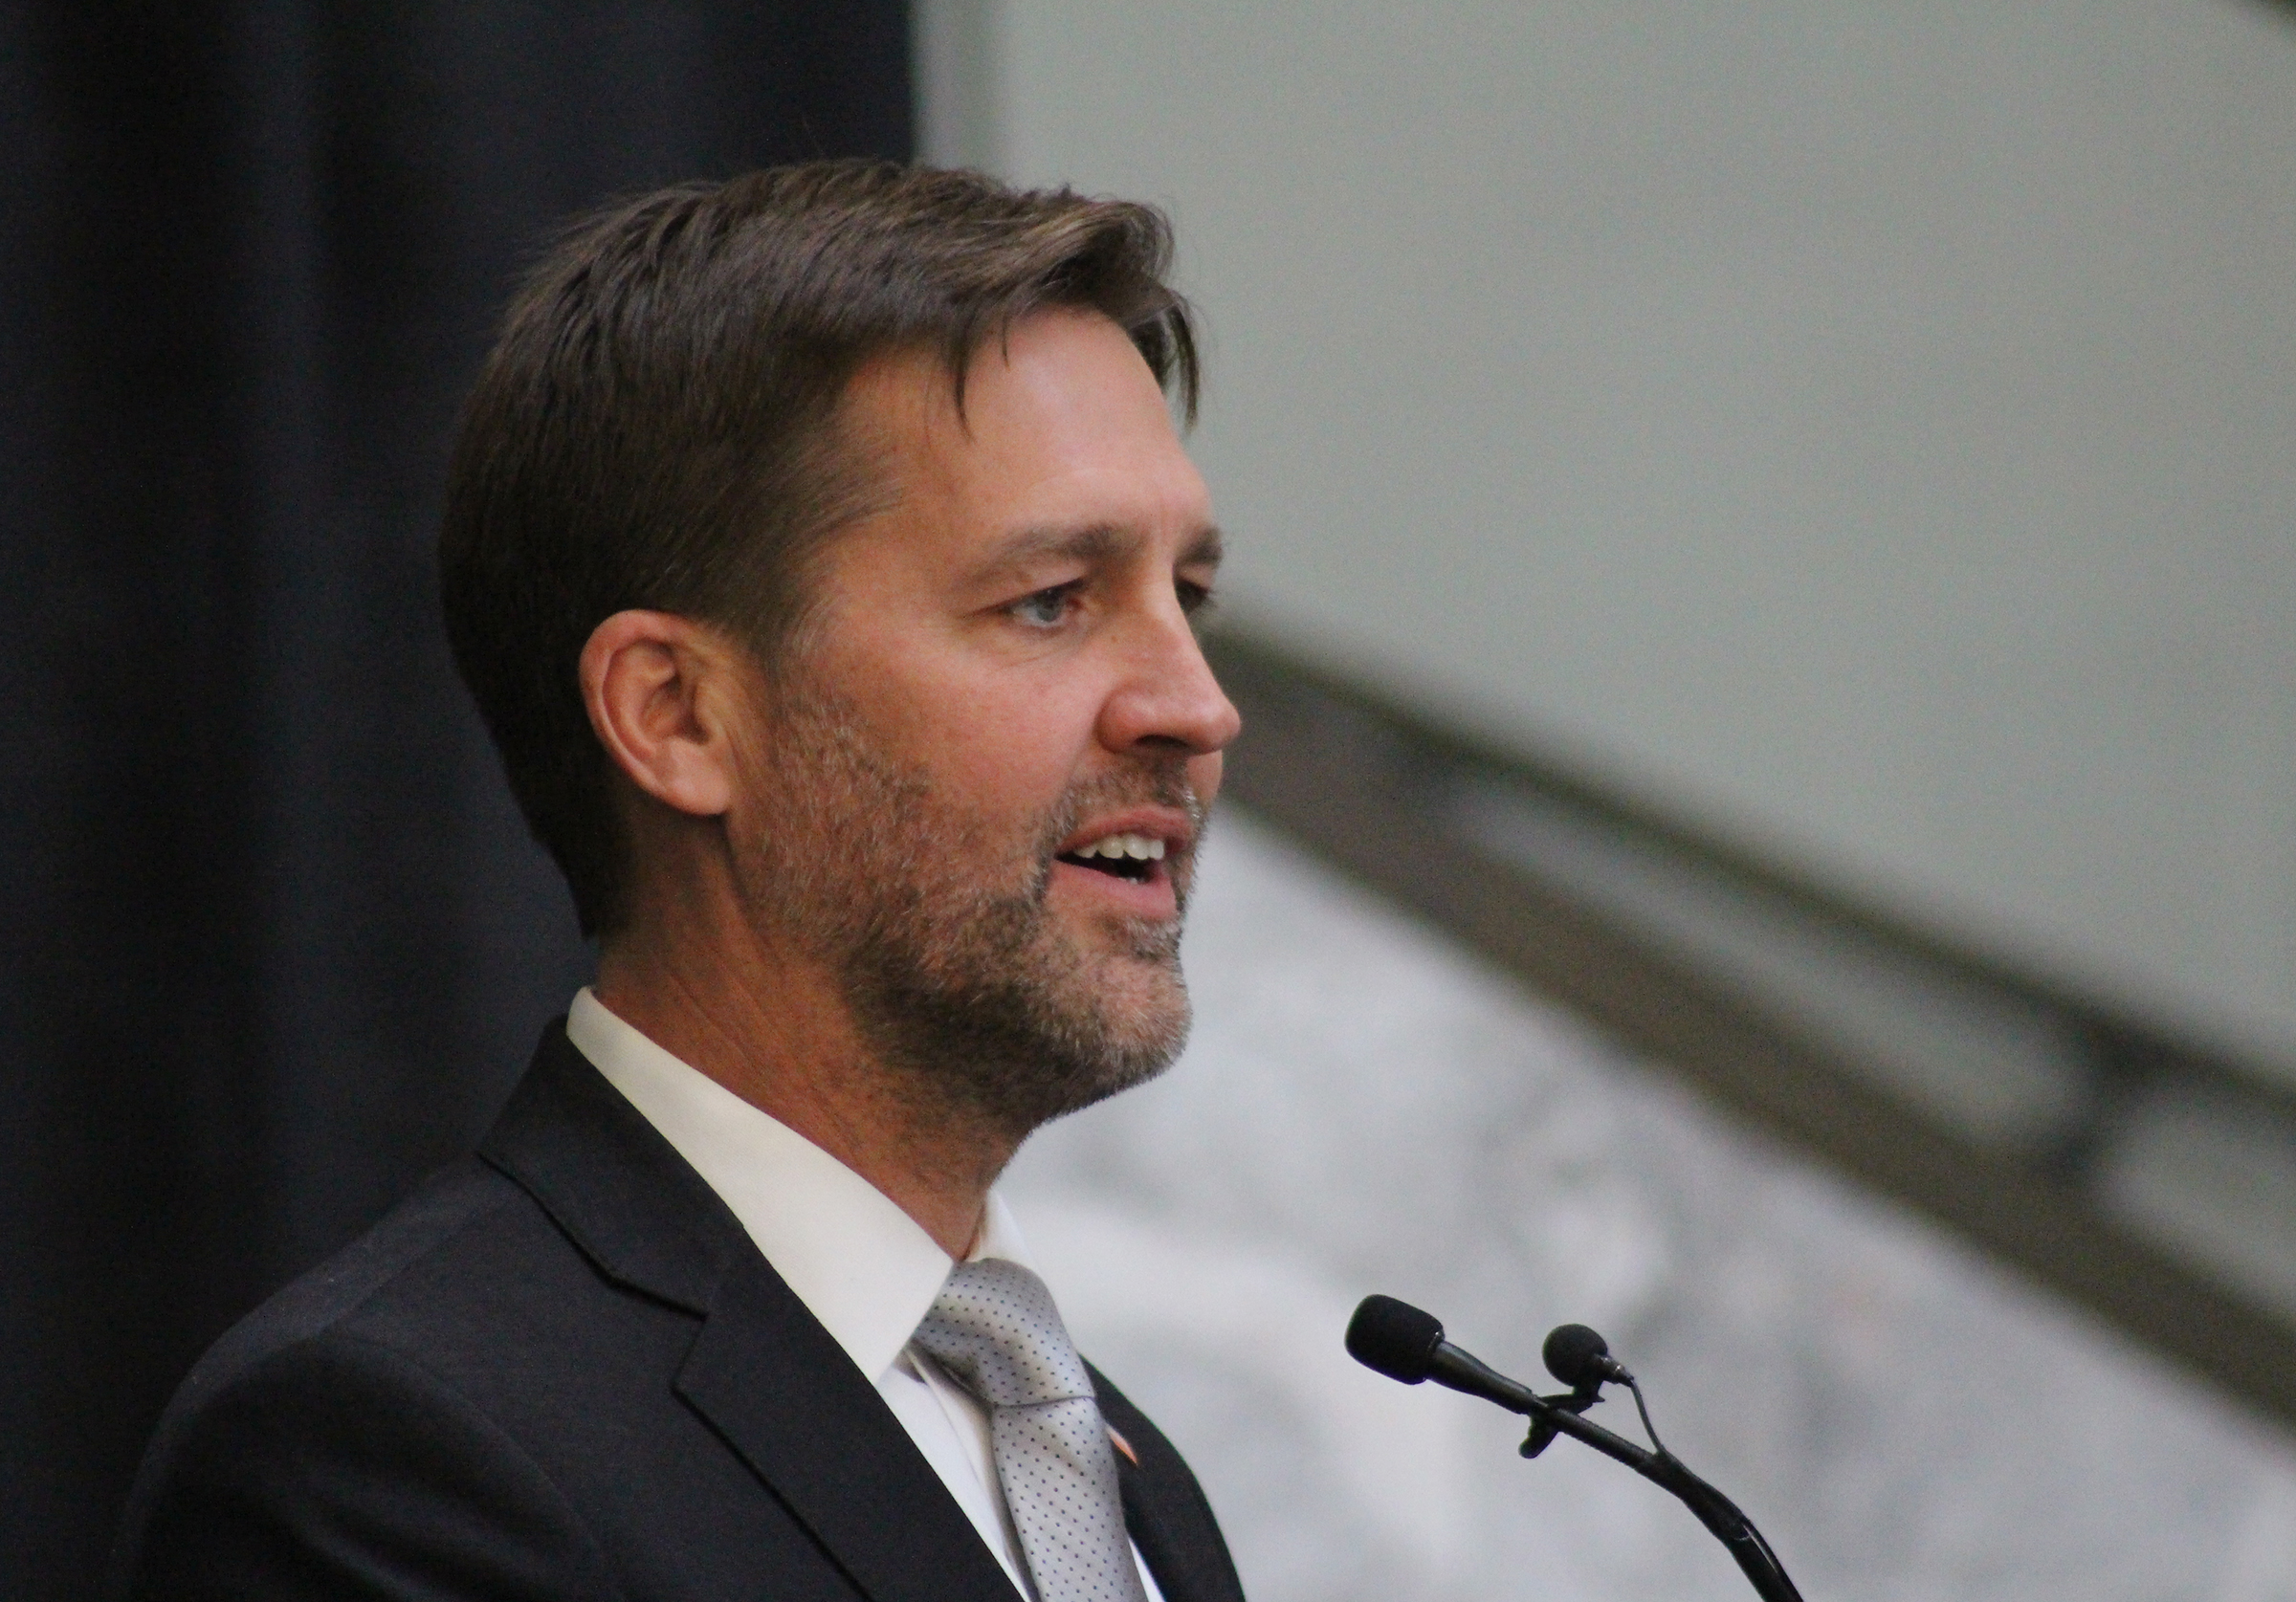 U.S. Sen. Ben Sasse delivers remarks during Brian C. Buescher's investiture ceremony at the Hruska Federal Courthouse on Friday, Nov. 15, 2019. (Photo by Scott Stewart)